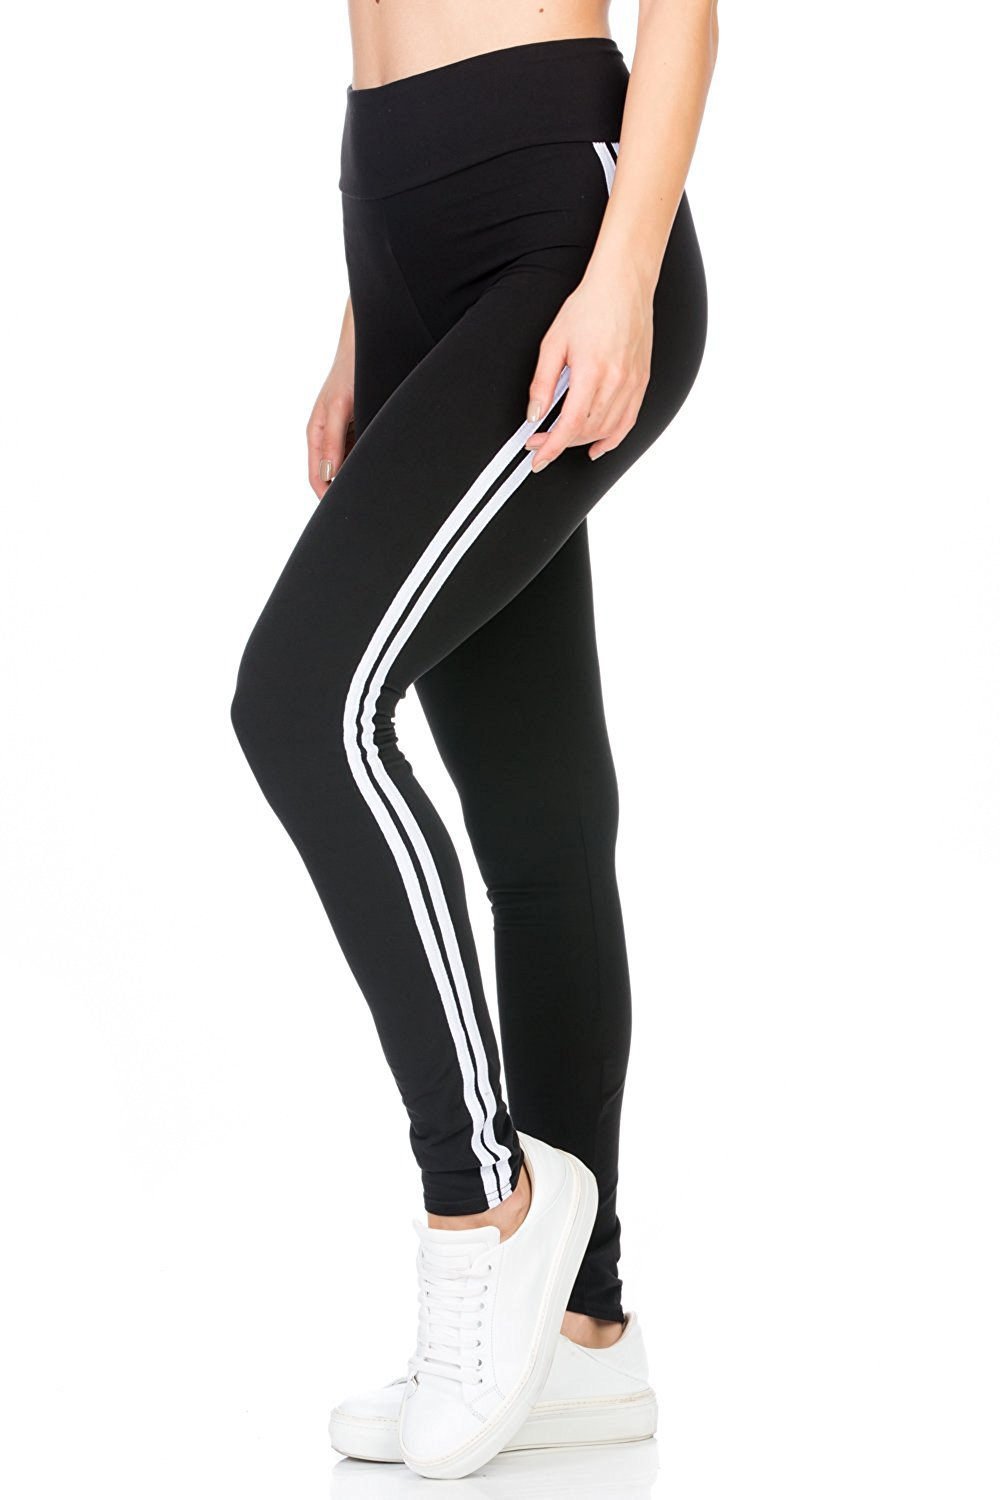 Amazon price history for BLINKIN Yoga Gym Workout and Active Sports Fitness Black Stripe Polyester Leggings Tights for Women|Girls(5550) (size-30)